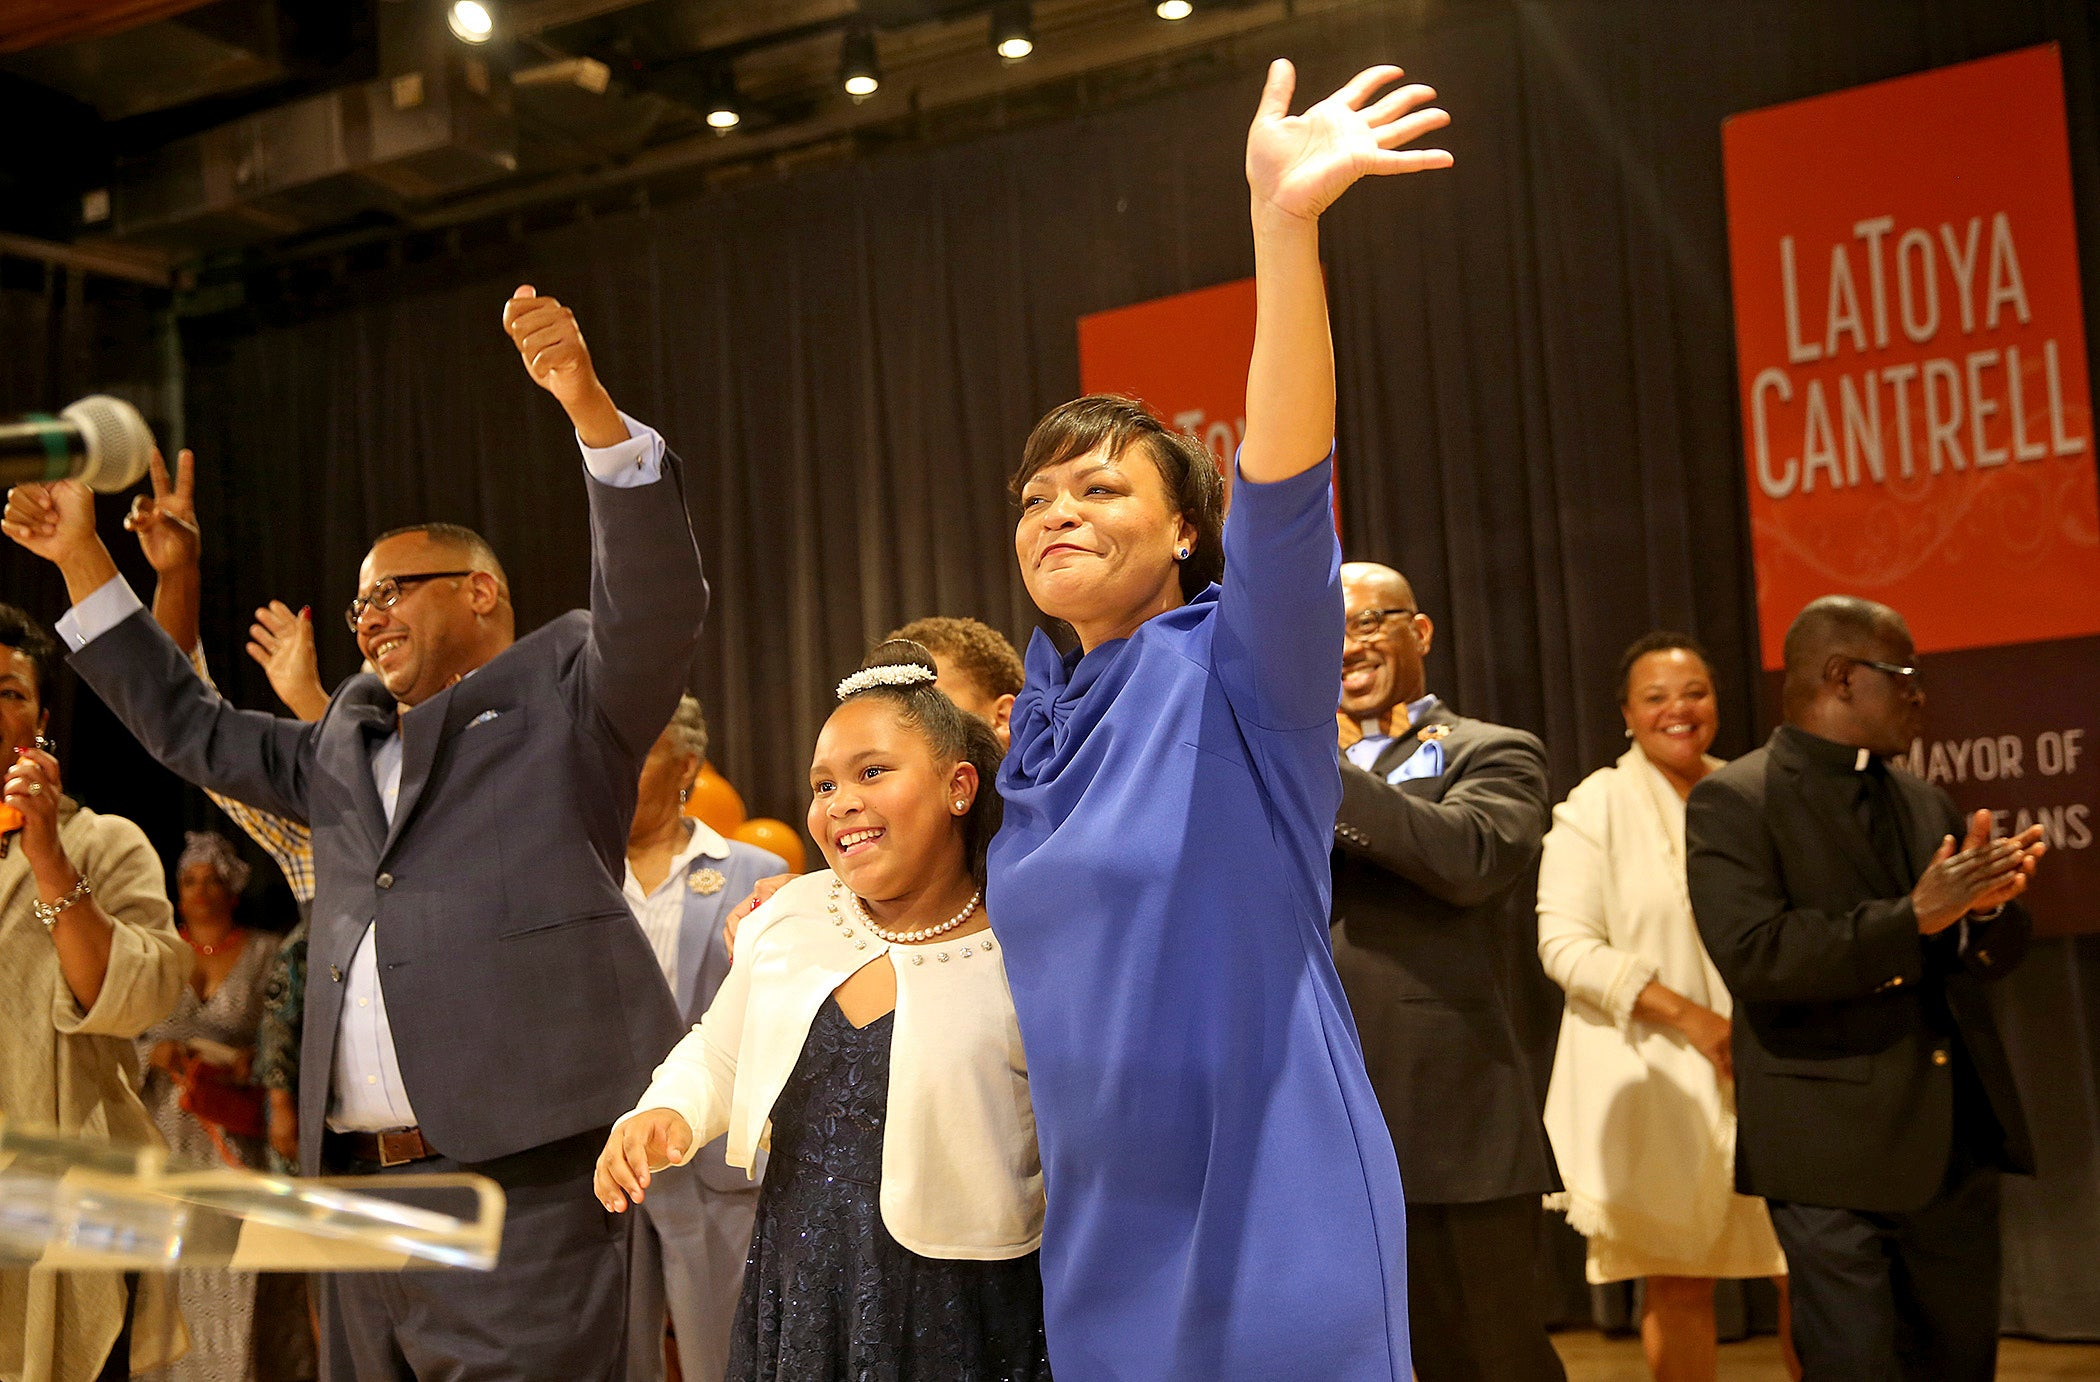 12 Things To Know About LaToya Cantrell, The First Black Woman Mayor Of New Orleans